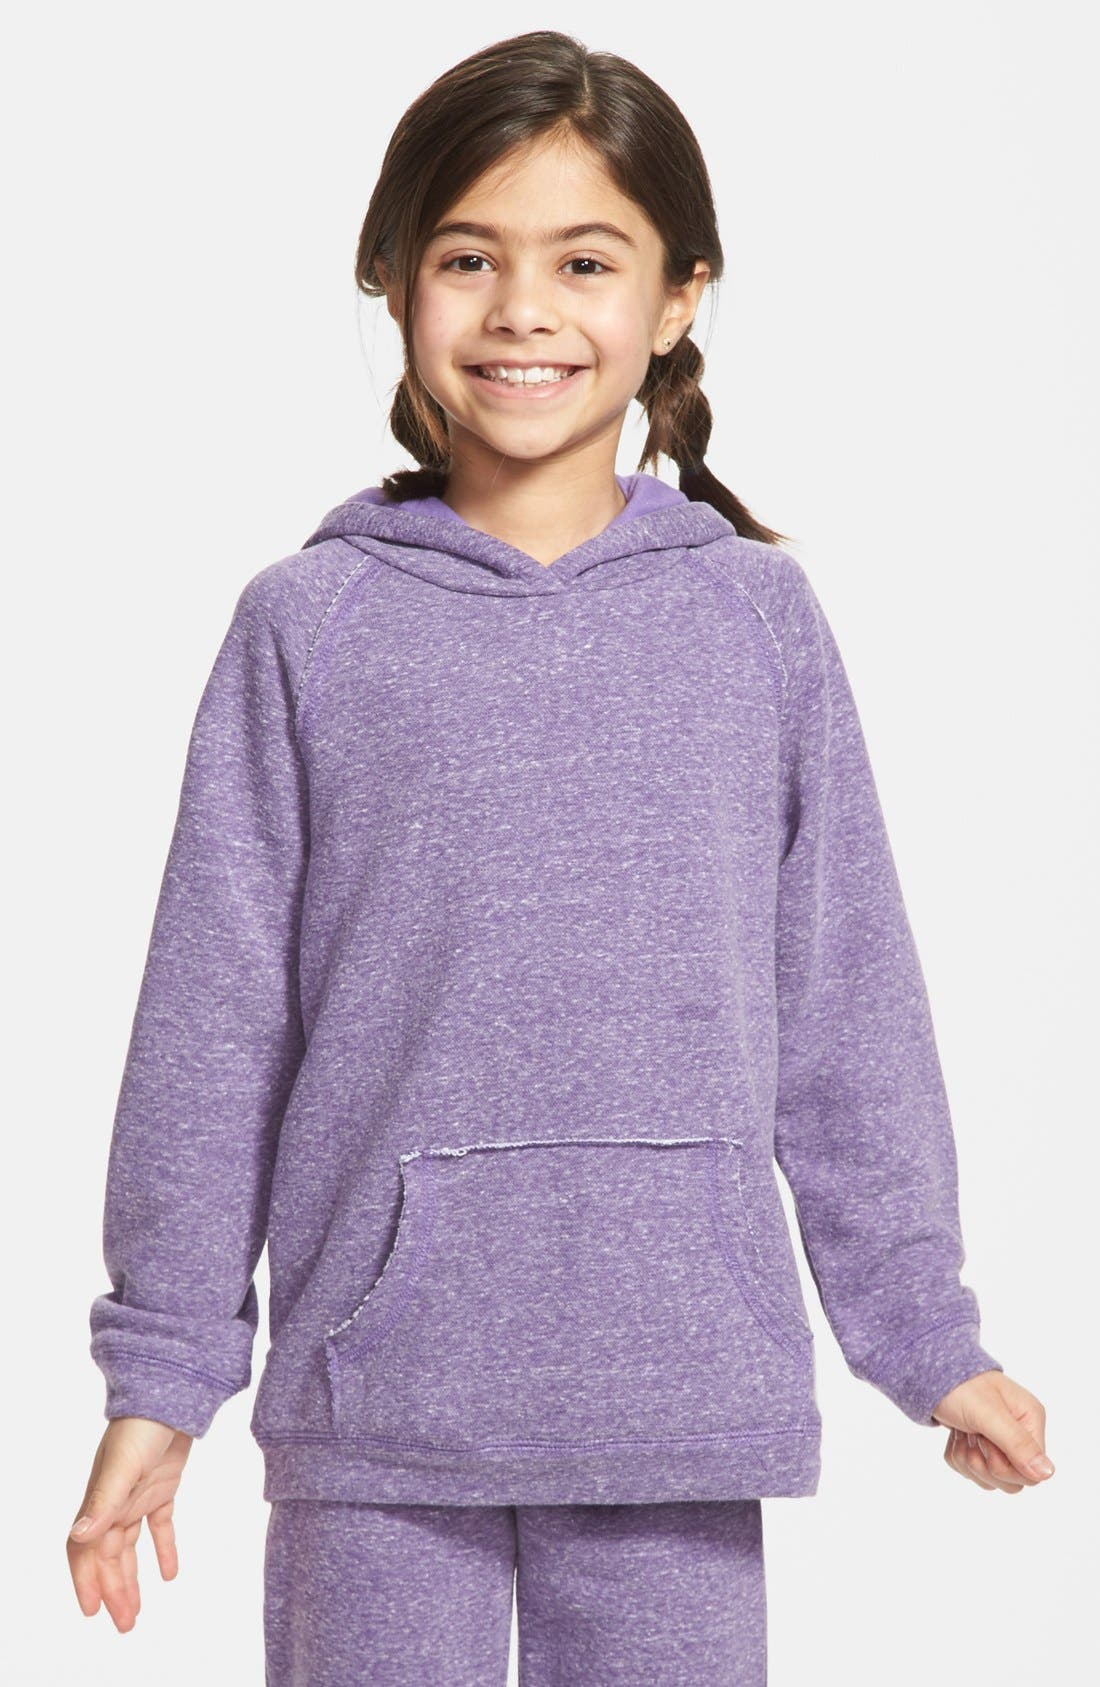 Alternate Image 1 Selected - Peek 'Logan' Pullover Fleece Hoodie (Toddler Girls, Little Girls & Big Girls)